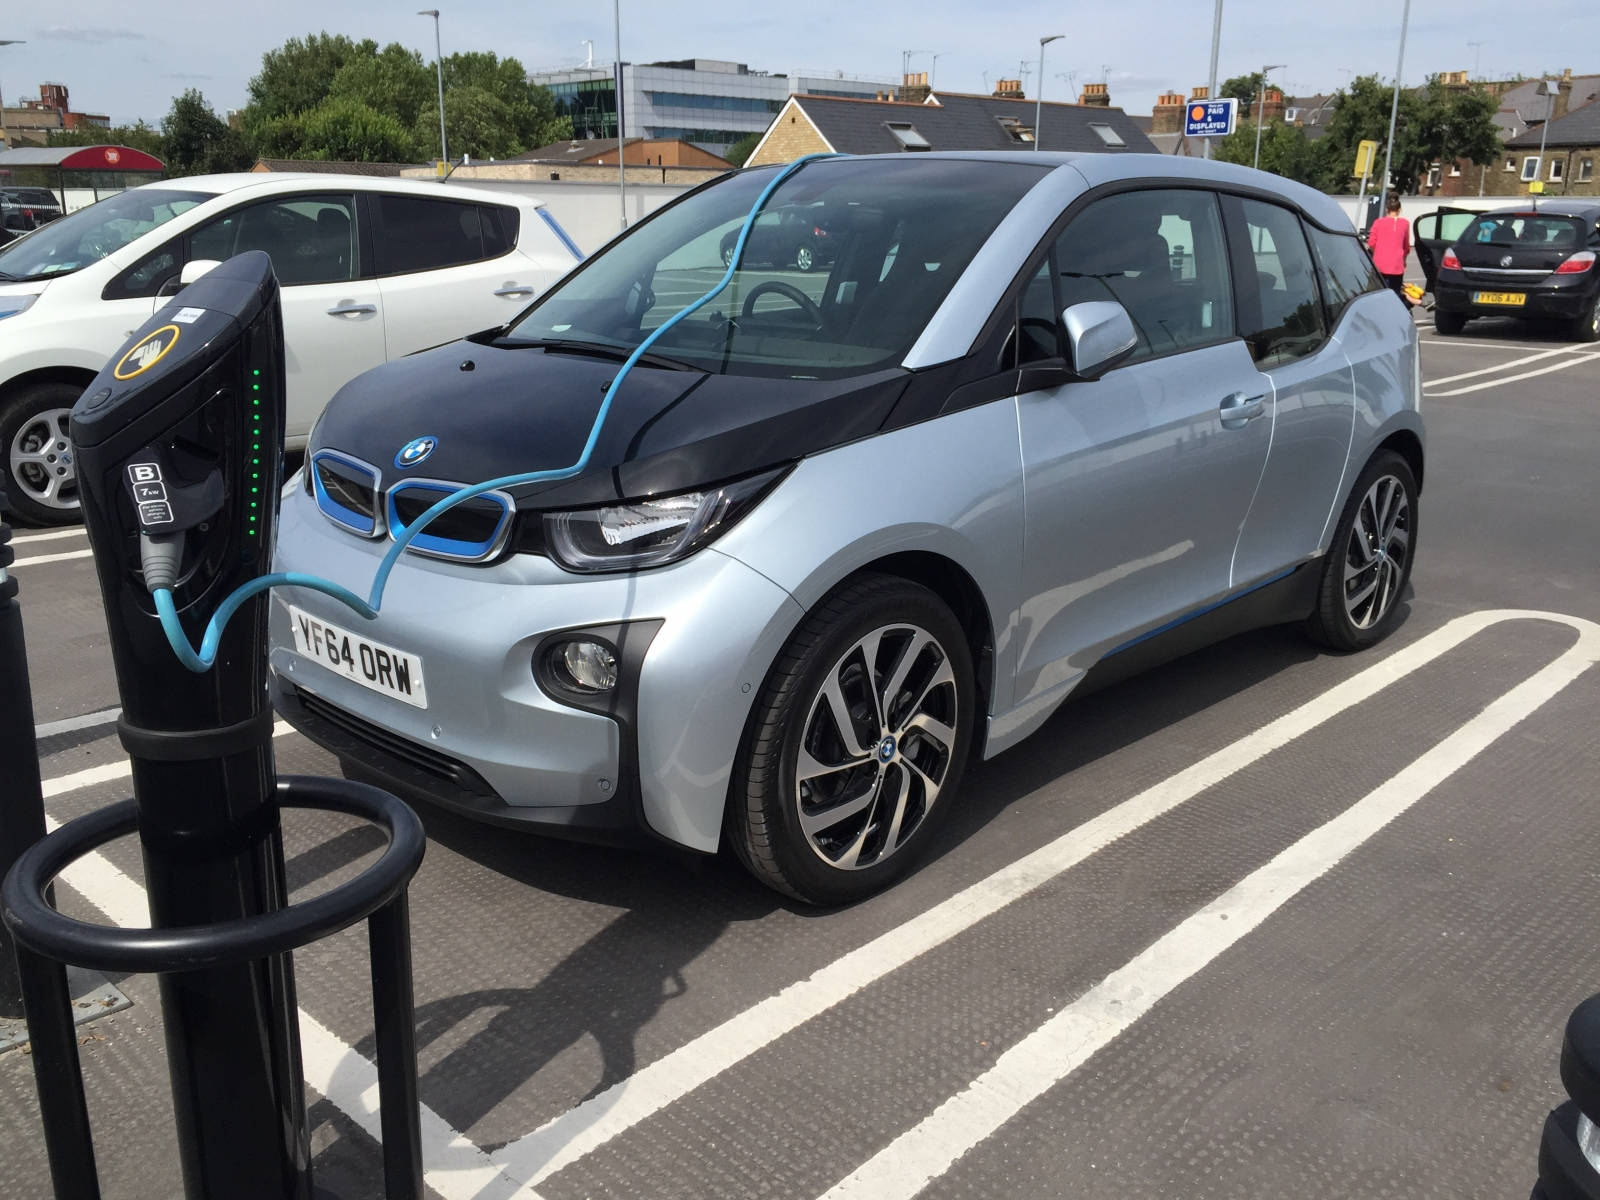 BMW i3 electric car charging